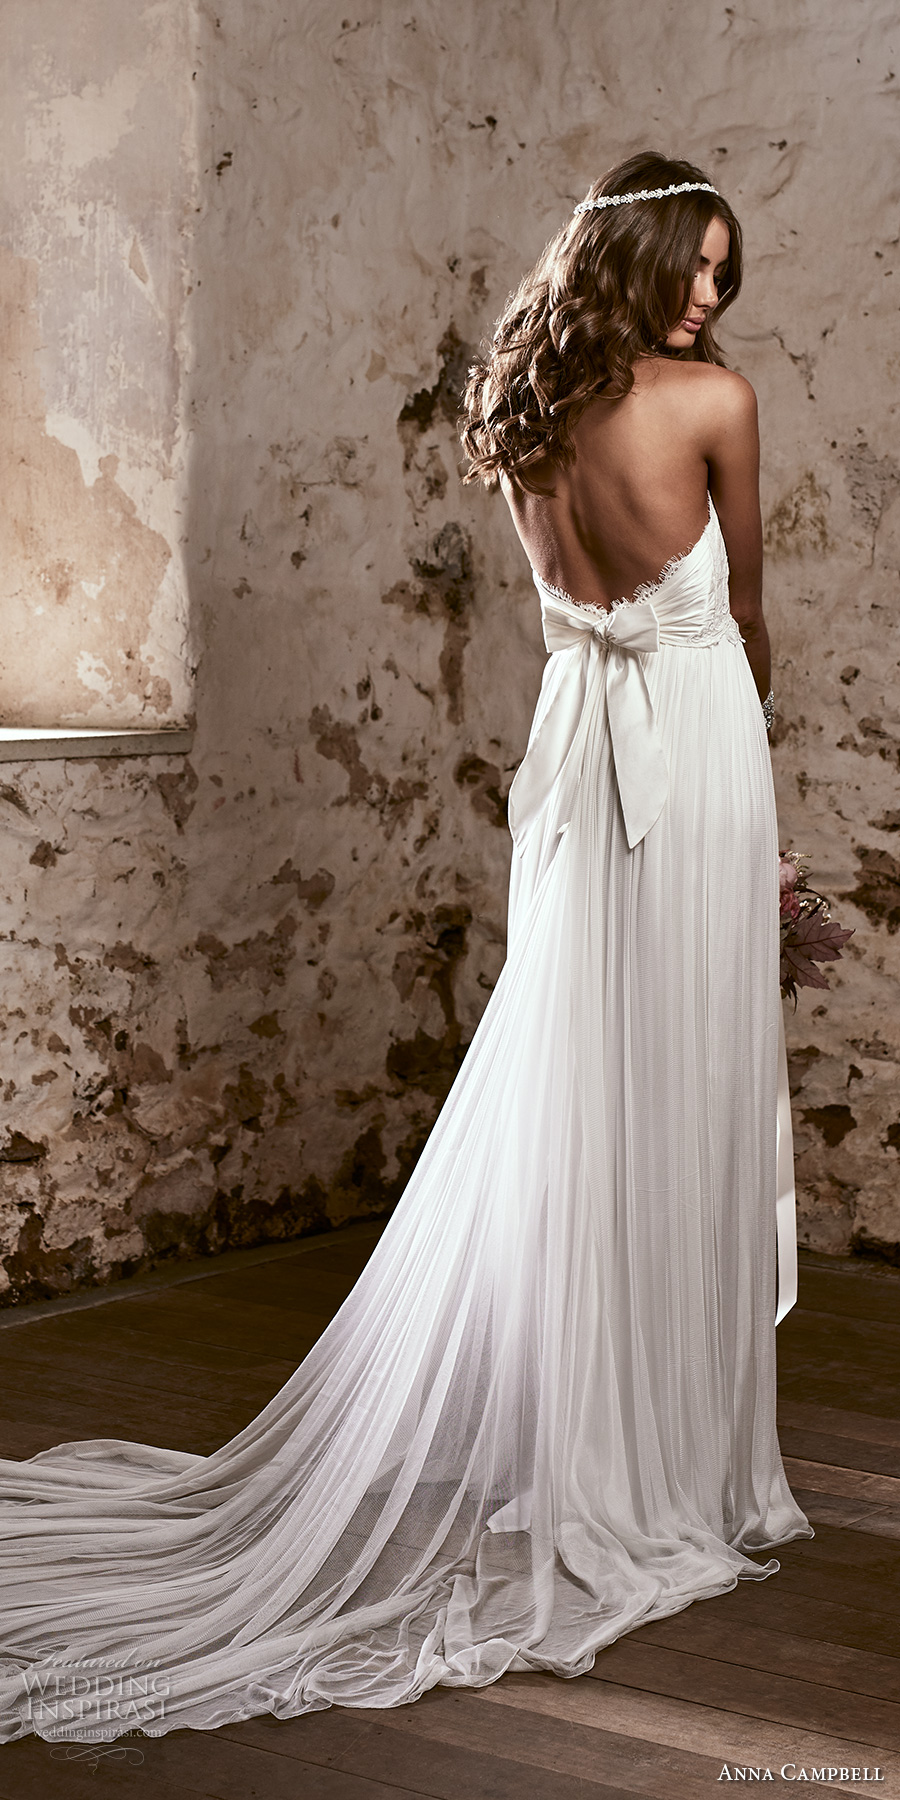 anna campbell 2018 bridal strapless sweetheart neckline heavily embellished bodice romantic soft a line wedding dress open back sweep train (16) bv